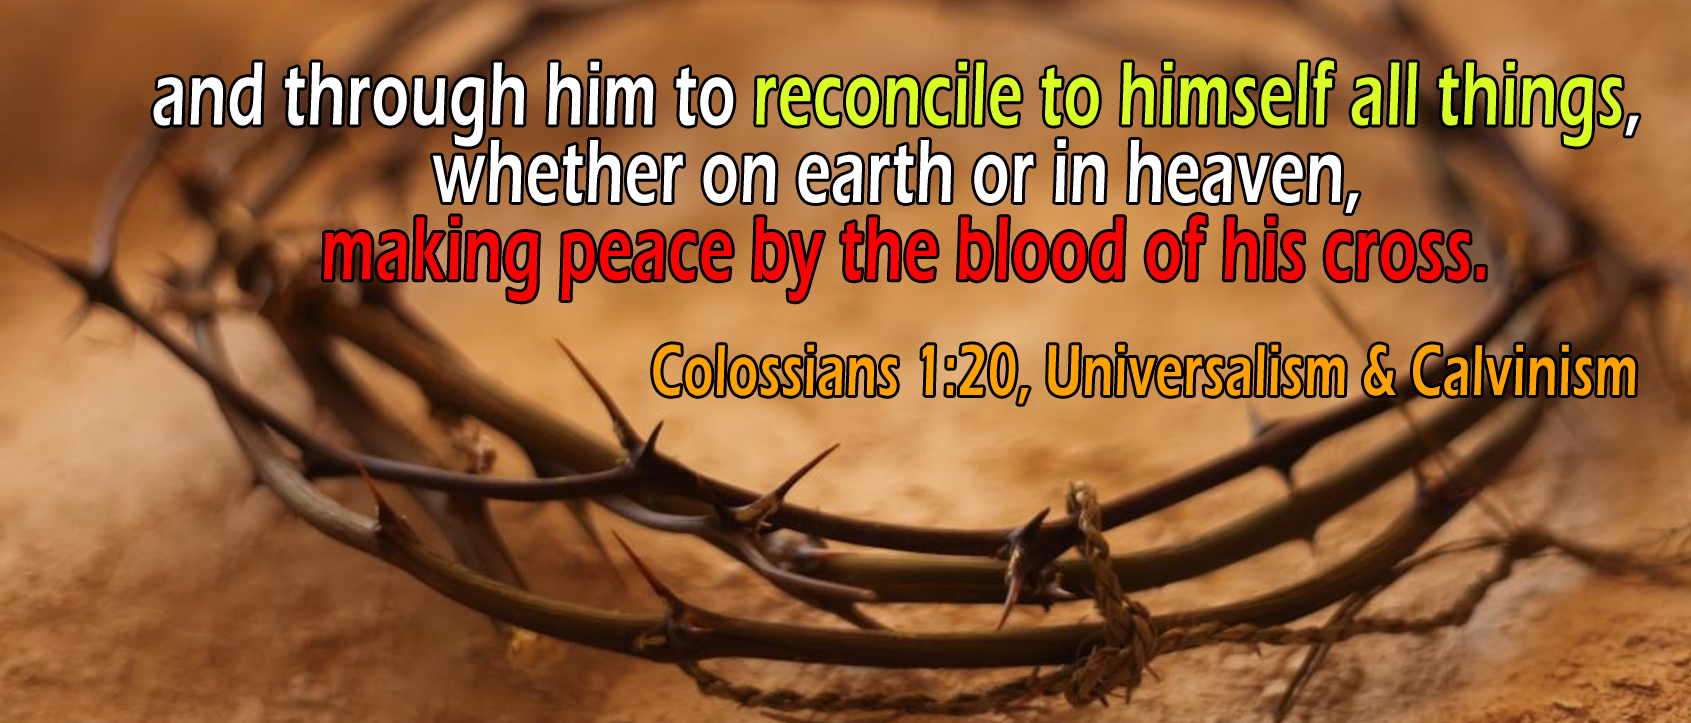 Colossians 1:19-20, 'reconcile to himself all things'